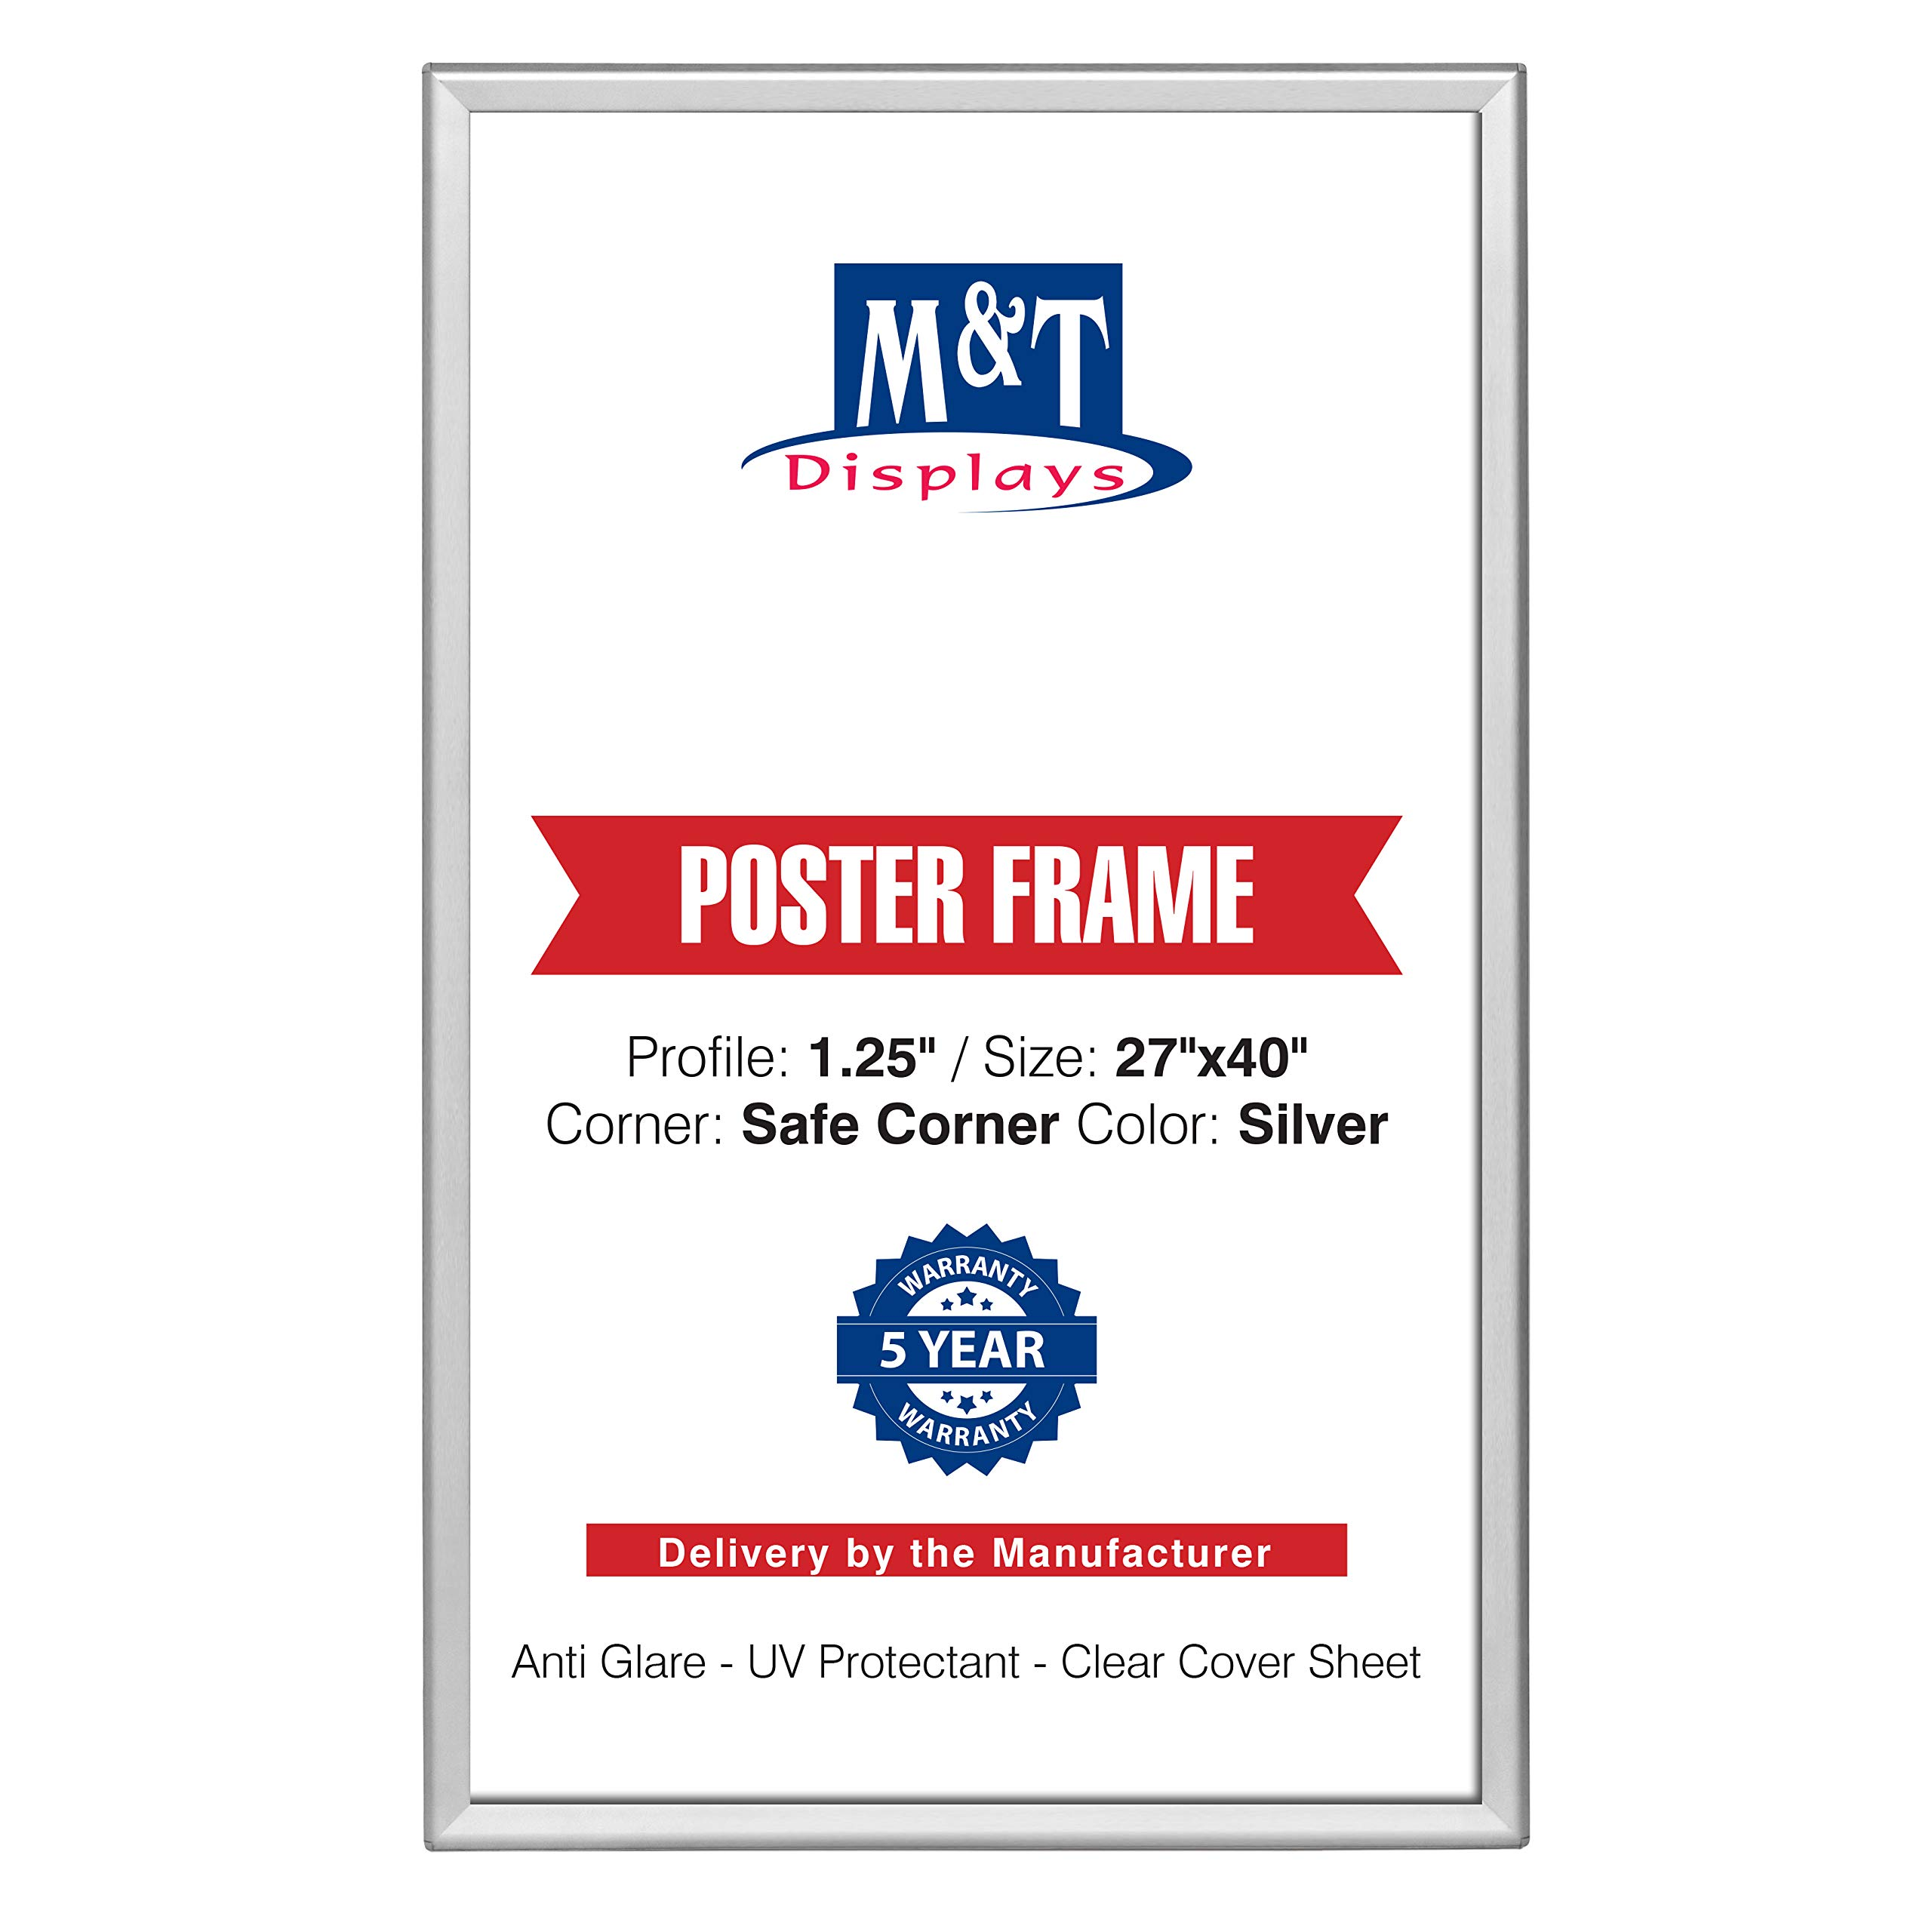 420mm x 594mm Signware 2 x Anti-Glare Replacement Covers for Snap Frames and A-Board Pavement Signs A2